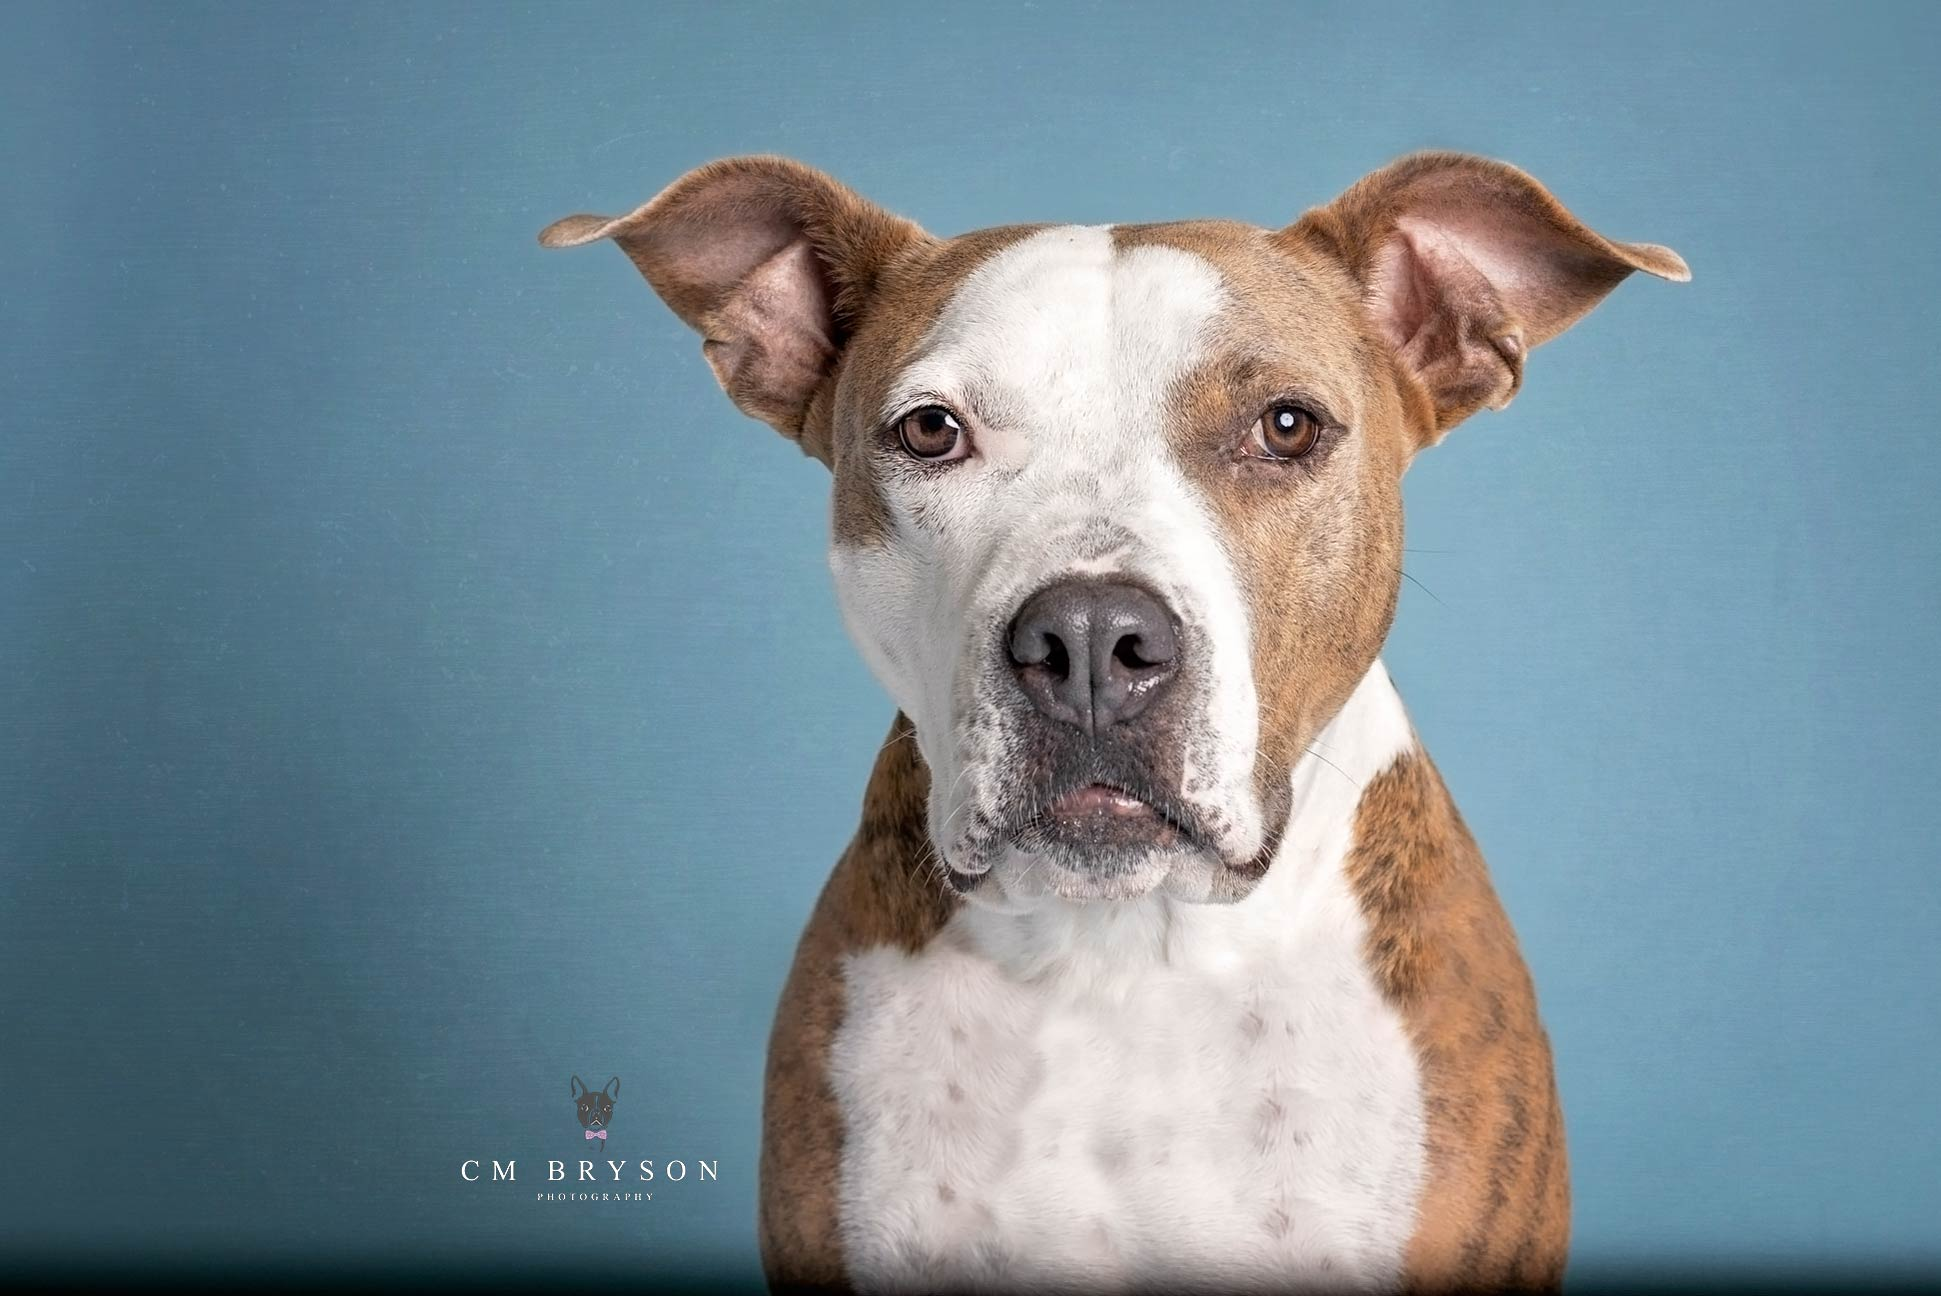 Pit Bull Terrier - Pinky - Adoptable Dog